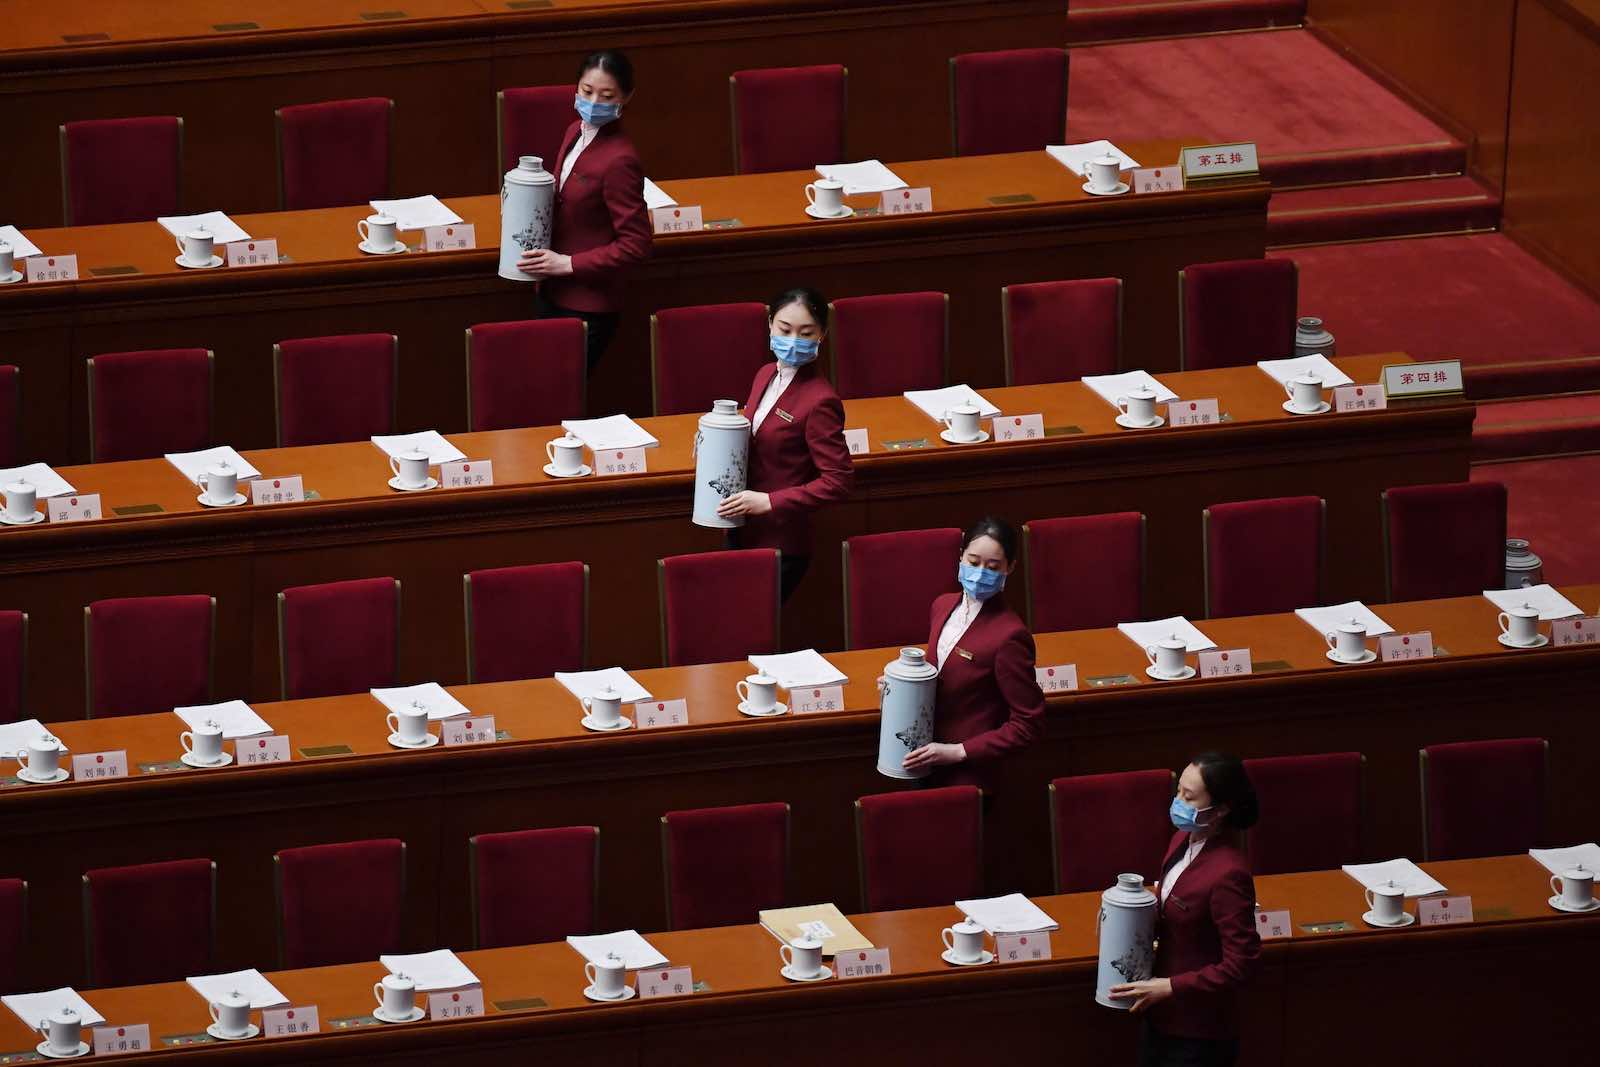 Attendants prepare to serve tea for delegates before the start of the second plenary session of the National People's Congress in the Great Hall of the People in Beijing in May (Photo by Noel Celis/AFP/Getty Images)